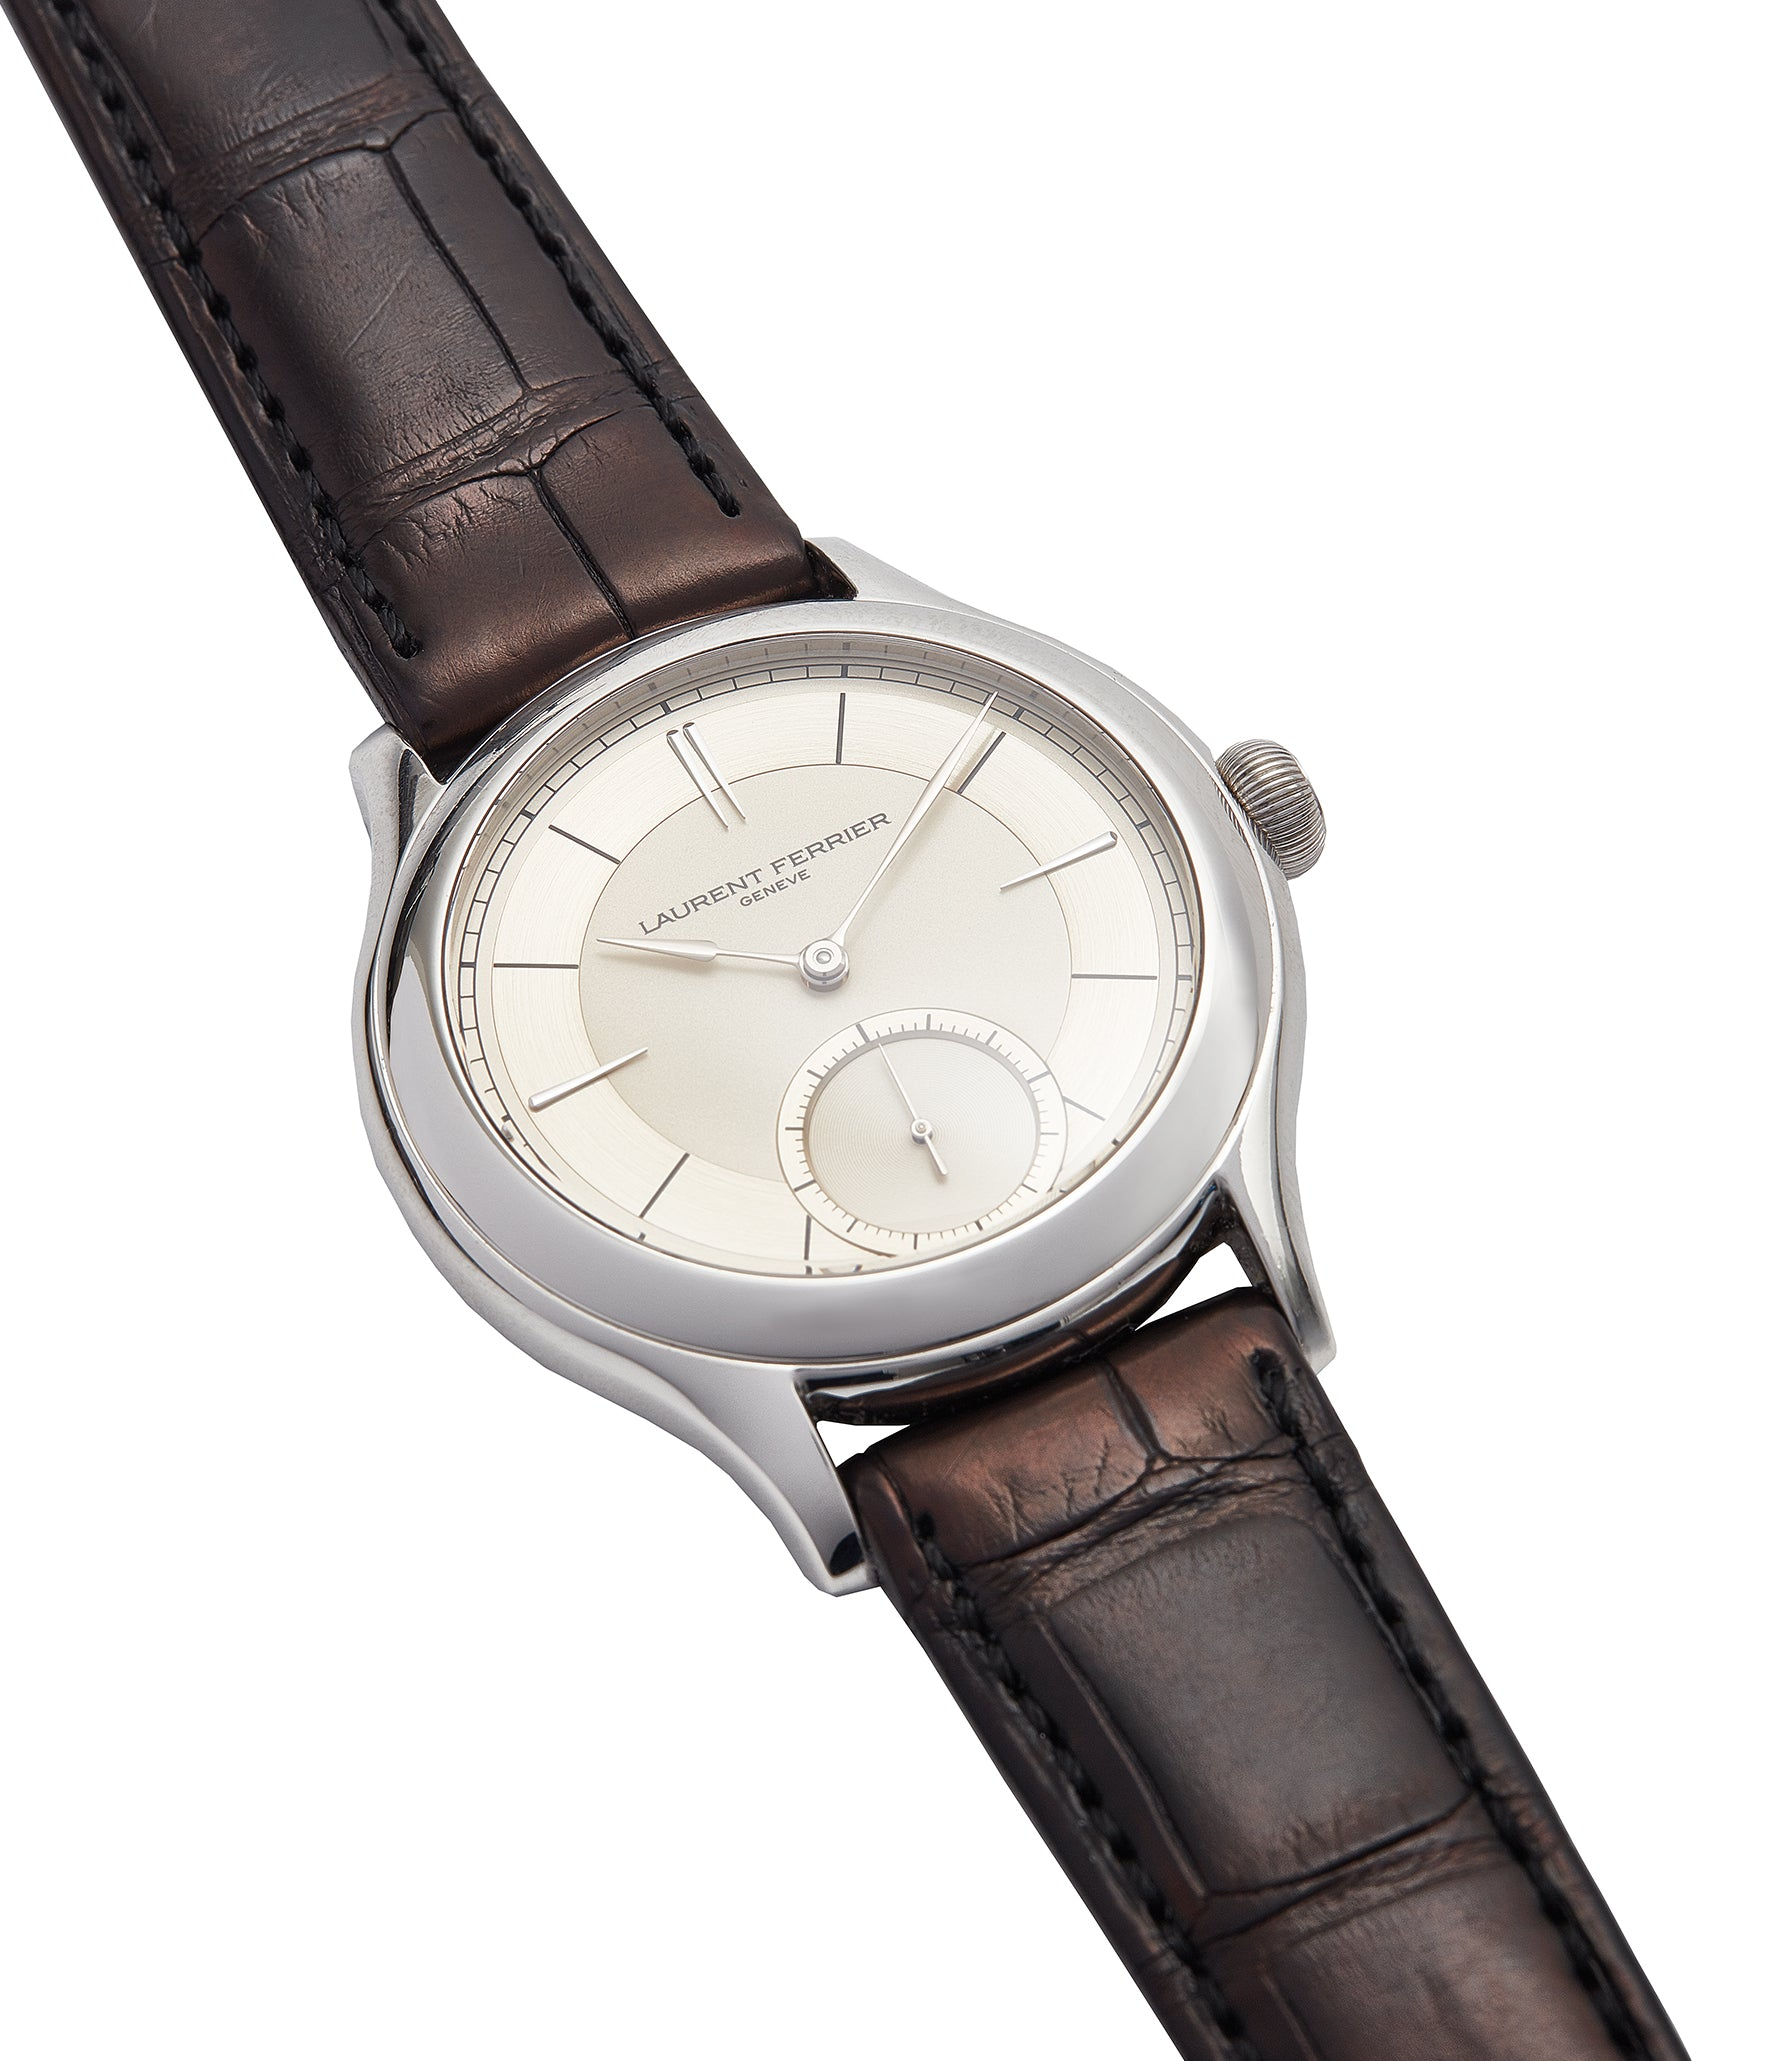 buying Laurent Ferrier Galet Micro-rotor 40 mm platinum time-only dress watch from independent watchmaker for sale online at A Collected Man London UK specialist of rare watches